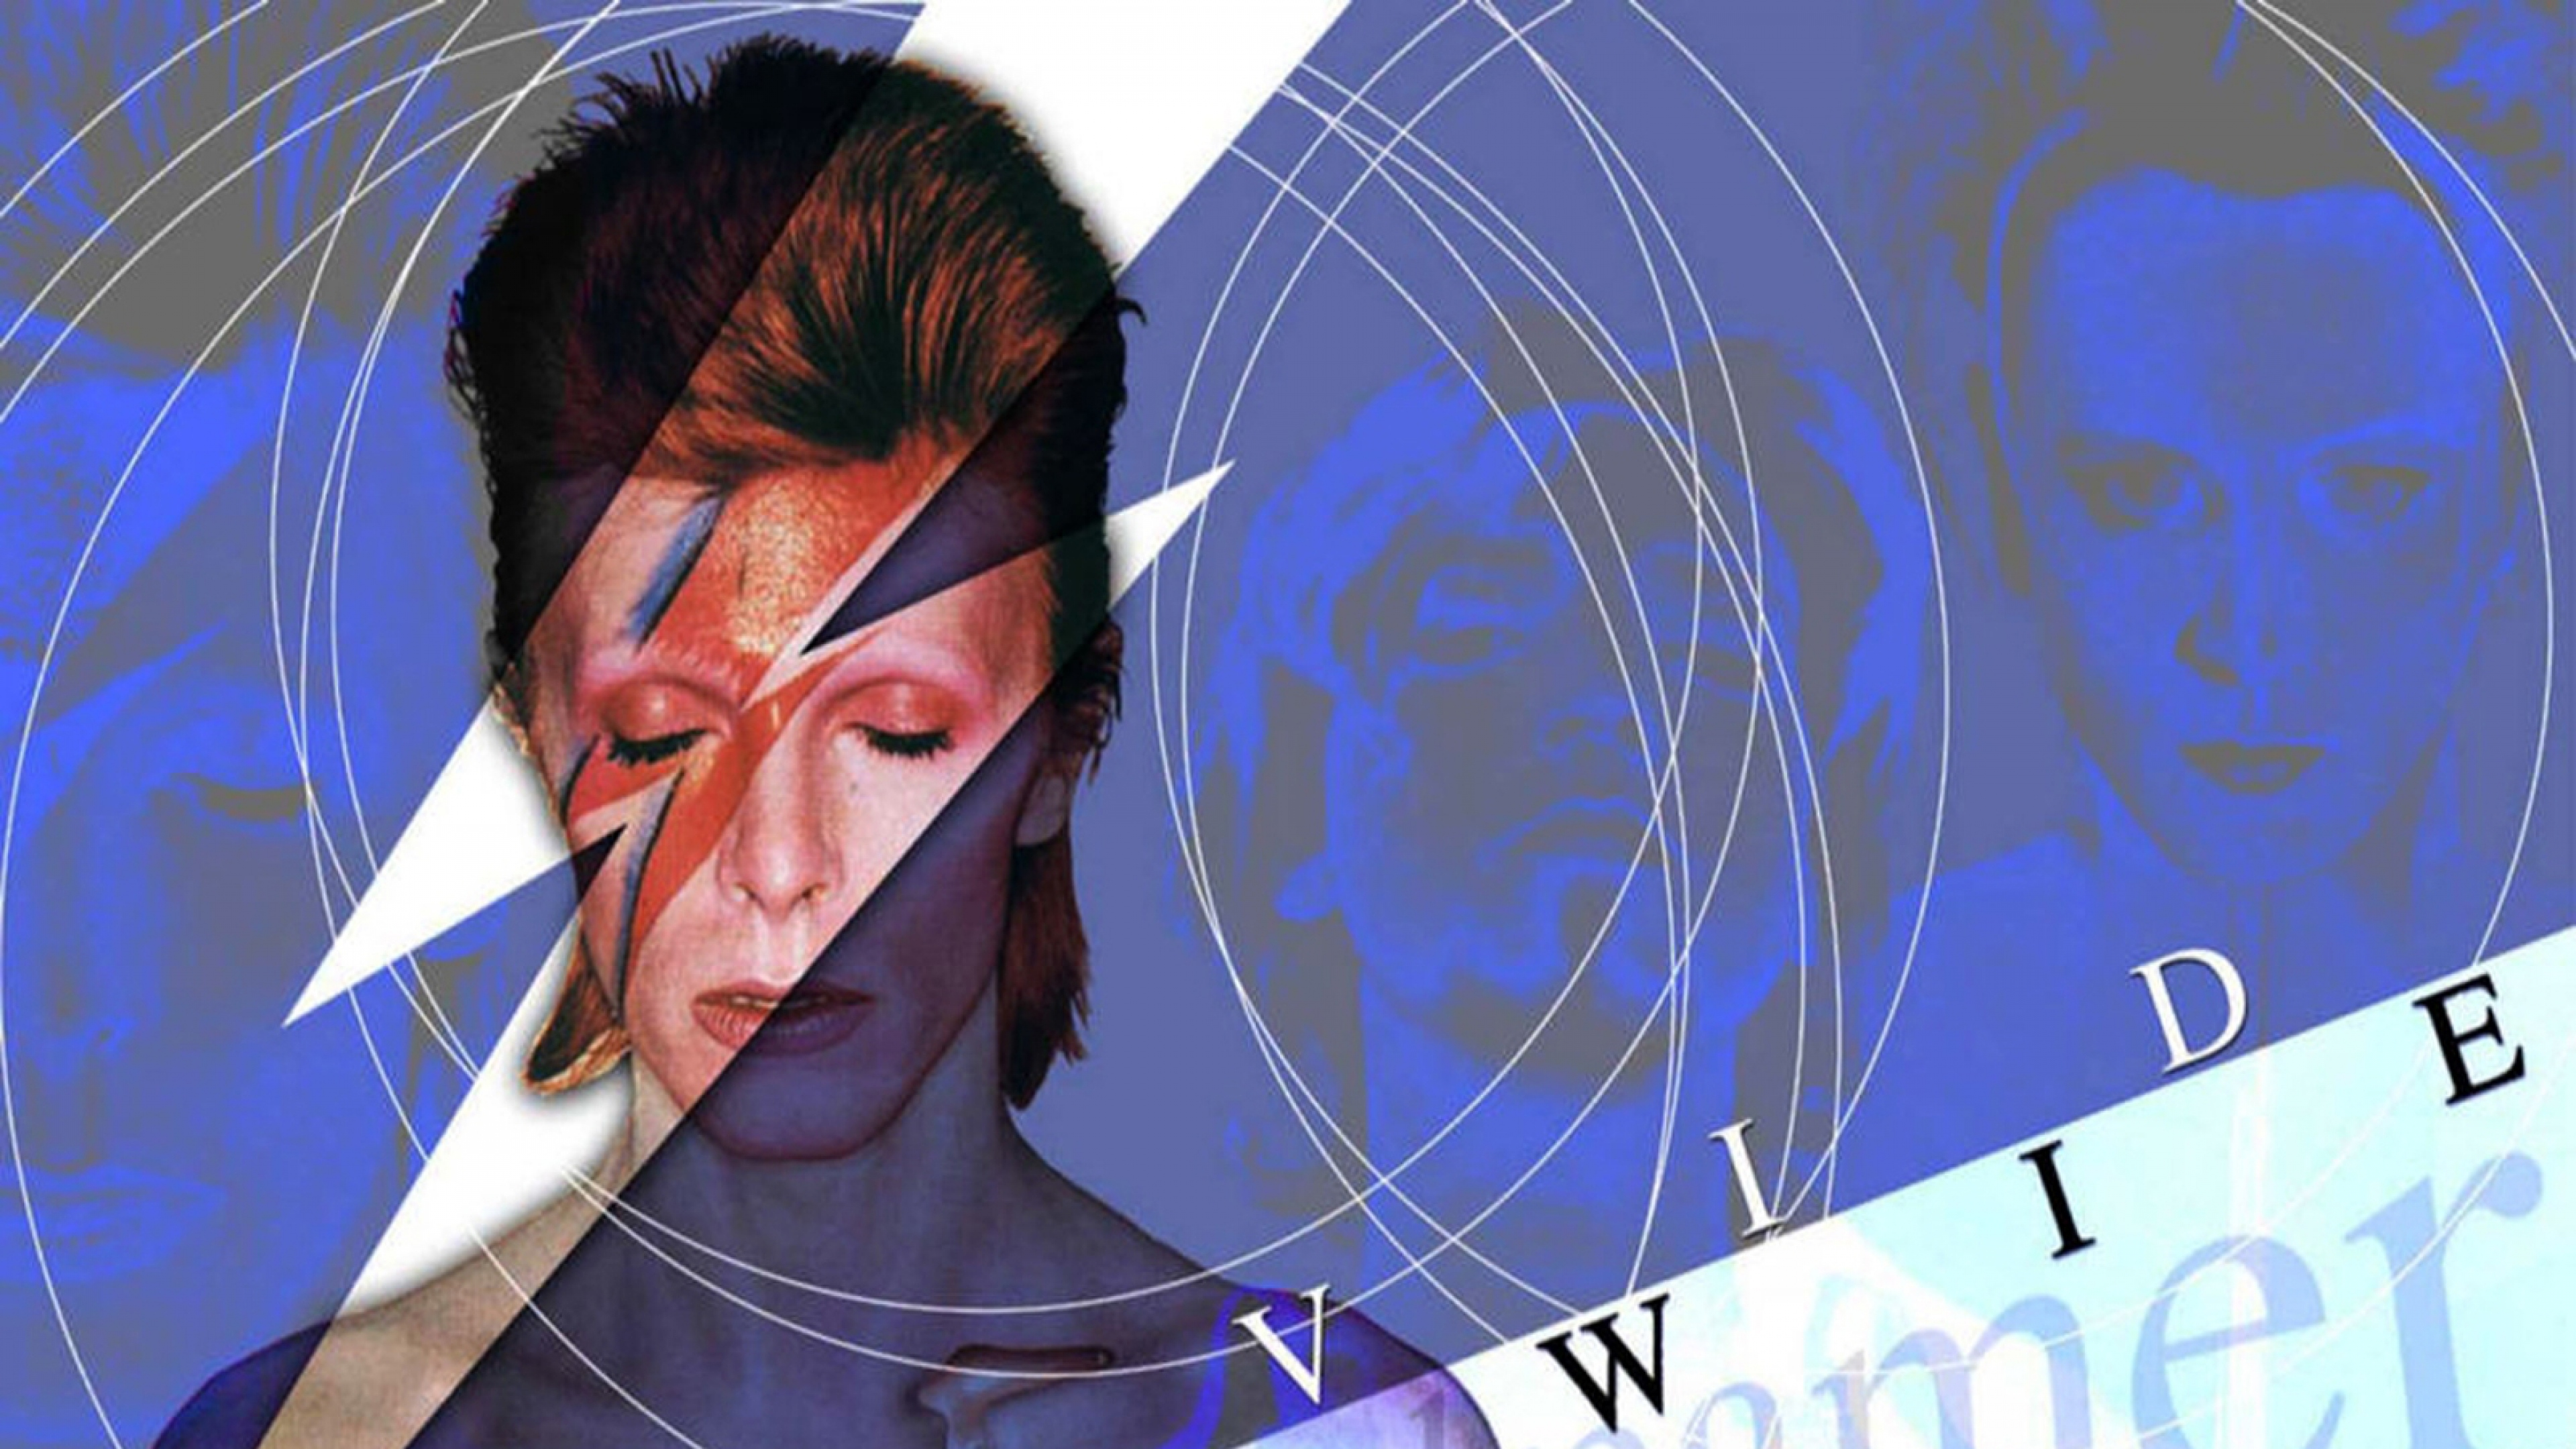 Wallpapers With Inspirational Quotes Free Download David Bowie Wallpaper For Desktop Pixelstalk Net